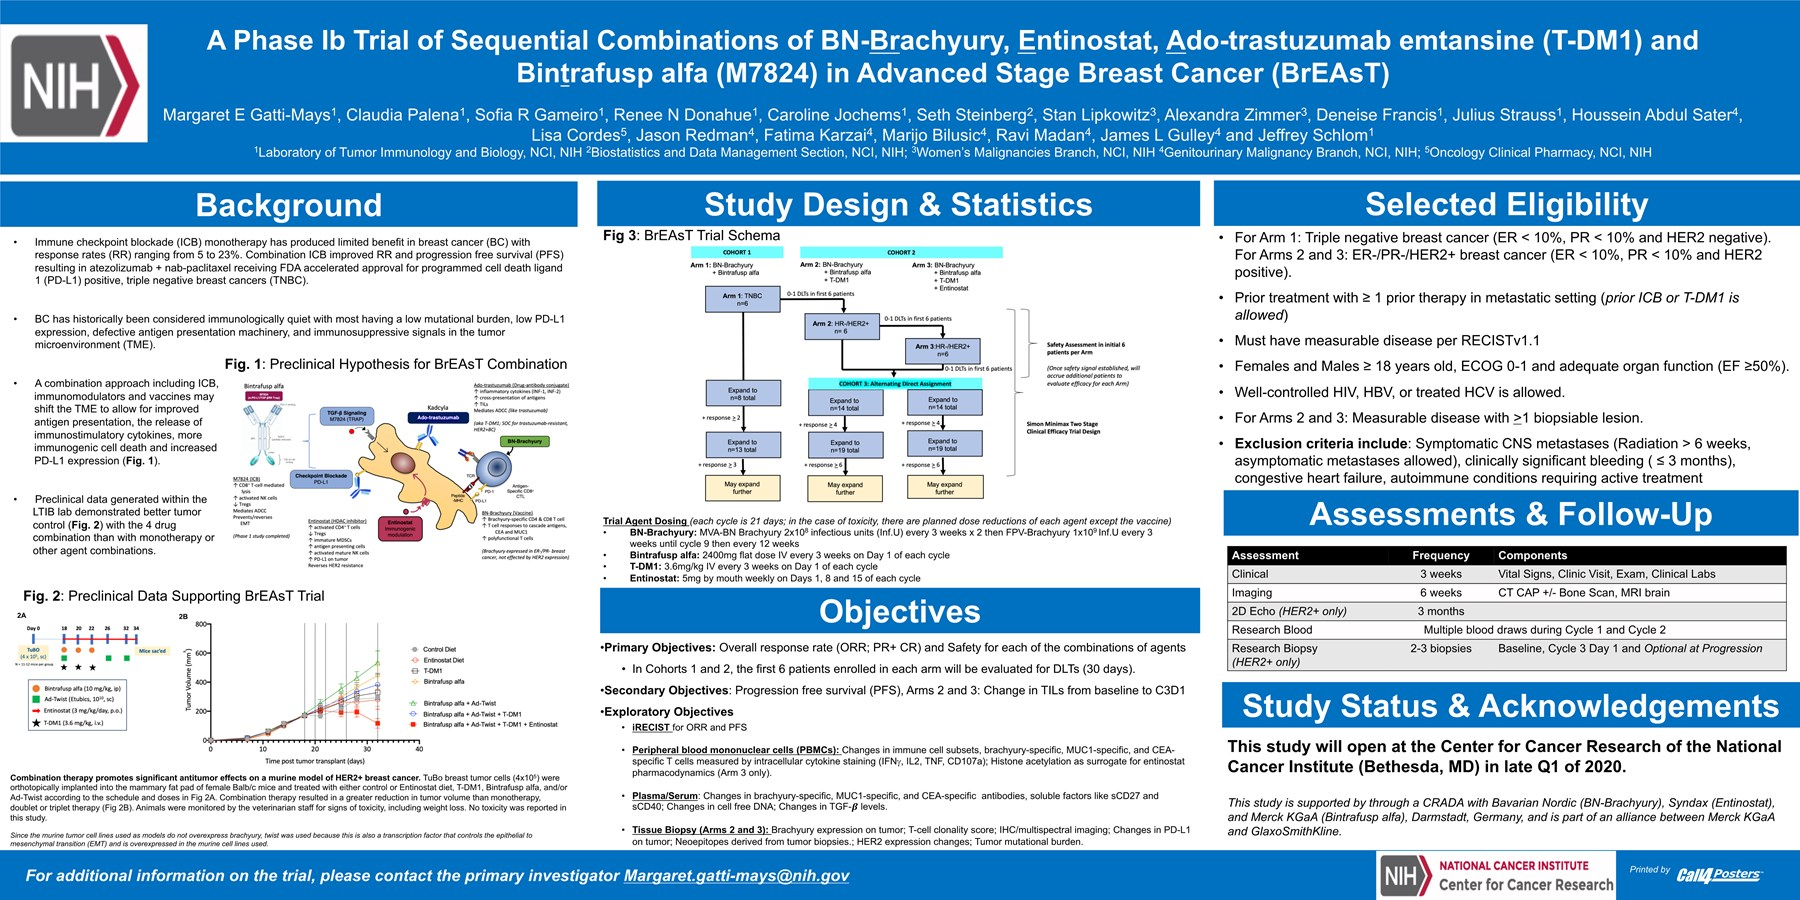 A Phase Ib Trial of Sequential Combinations of BN-Brachyury, Entinostat, Ado-trastuzumab emtansine (T-DM1) and Bintrafusp alfa (M7824) in Advanced Stage Breast Cancer (BrEAsT)